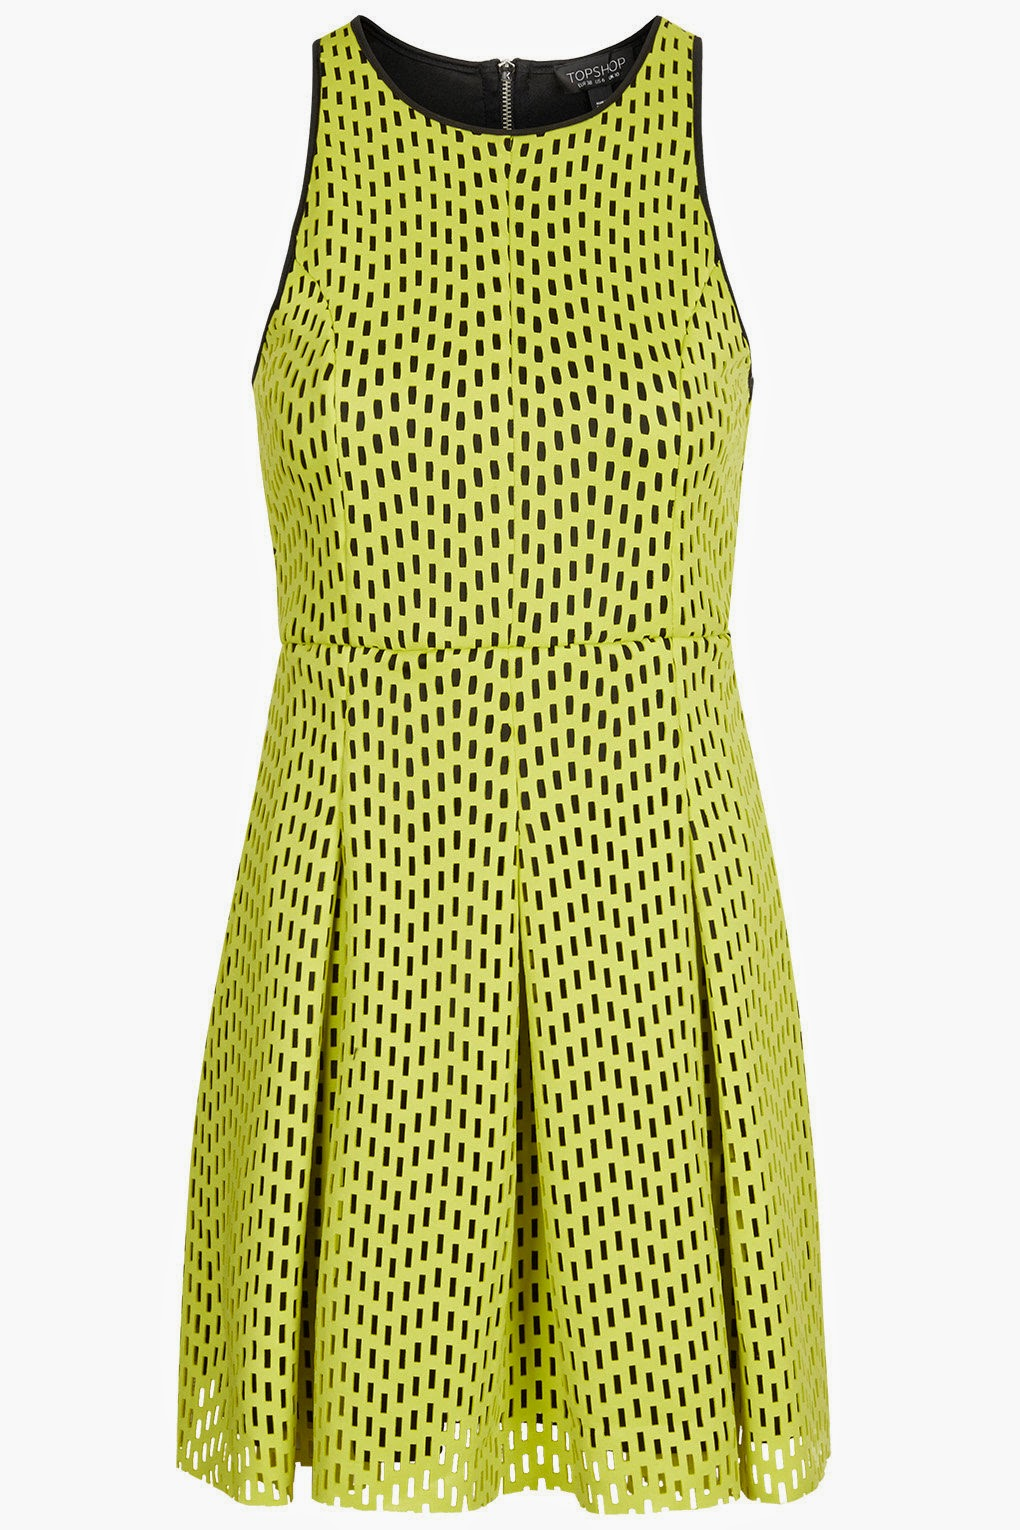 bright yellow topshop dress